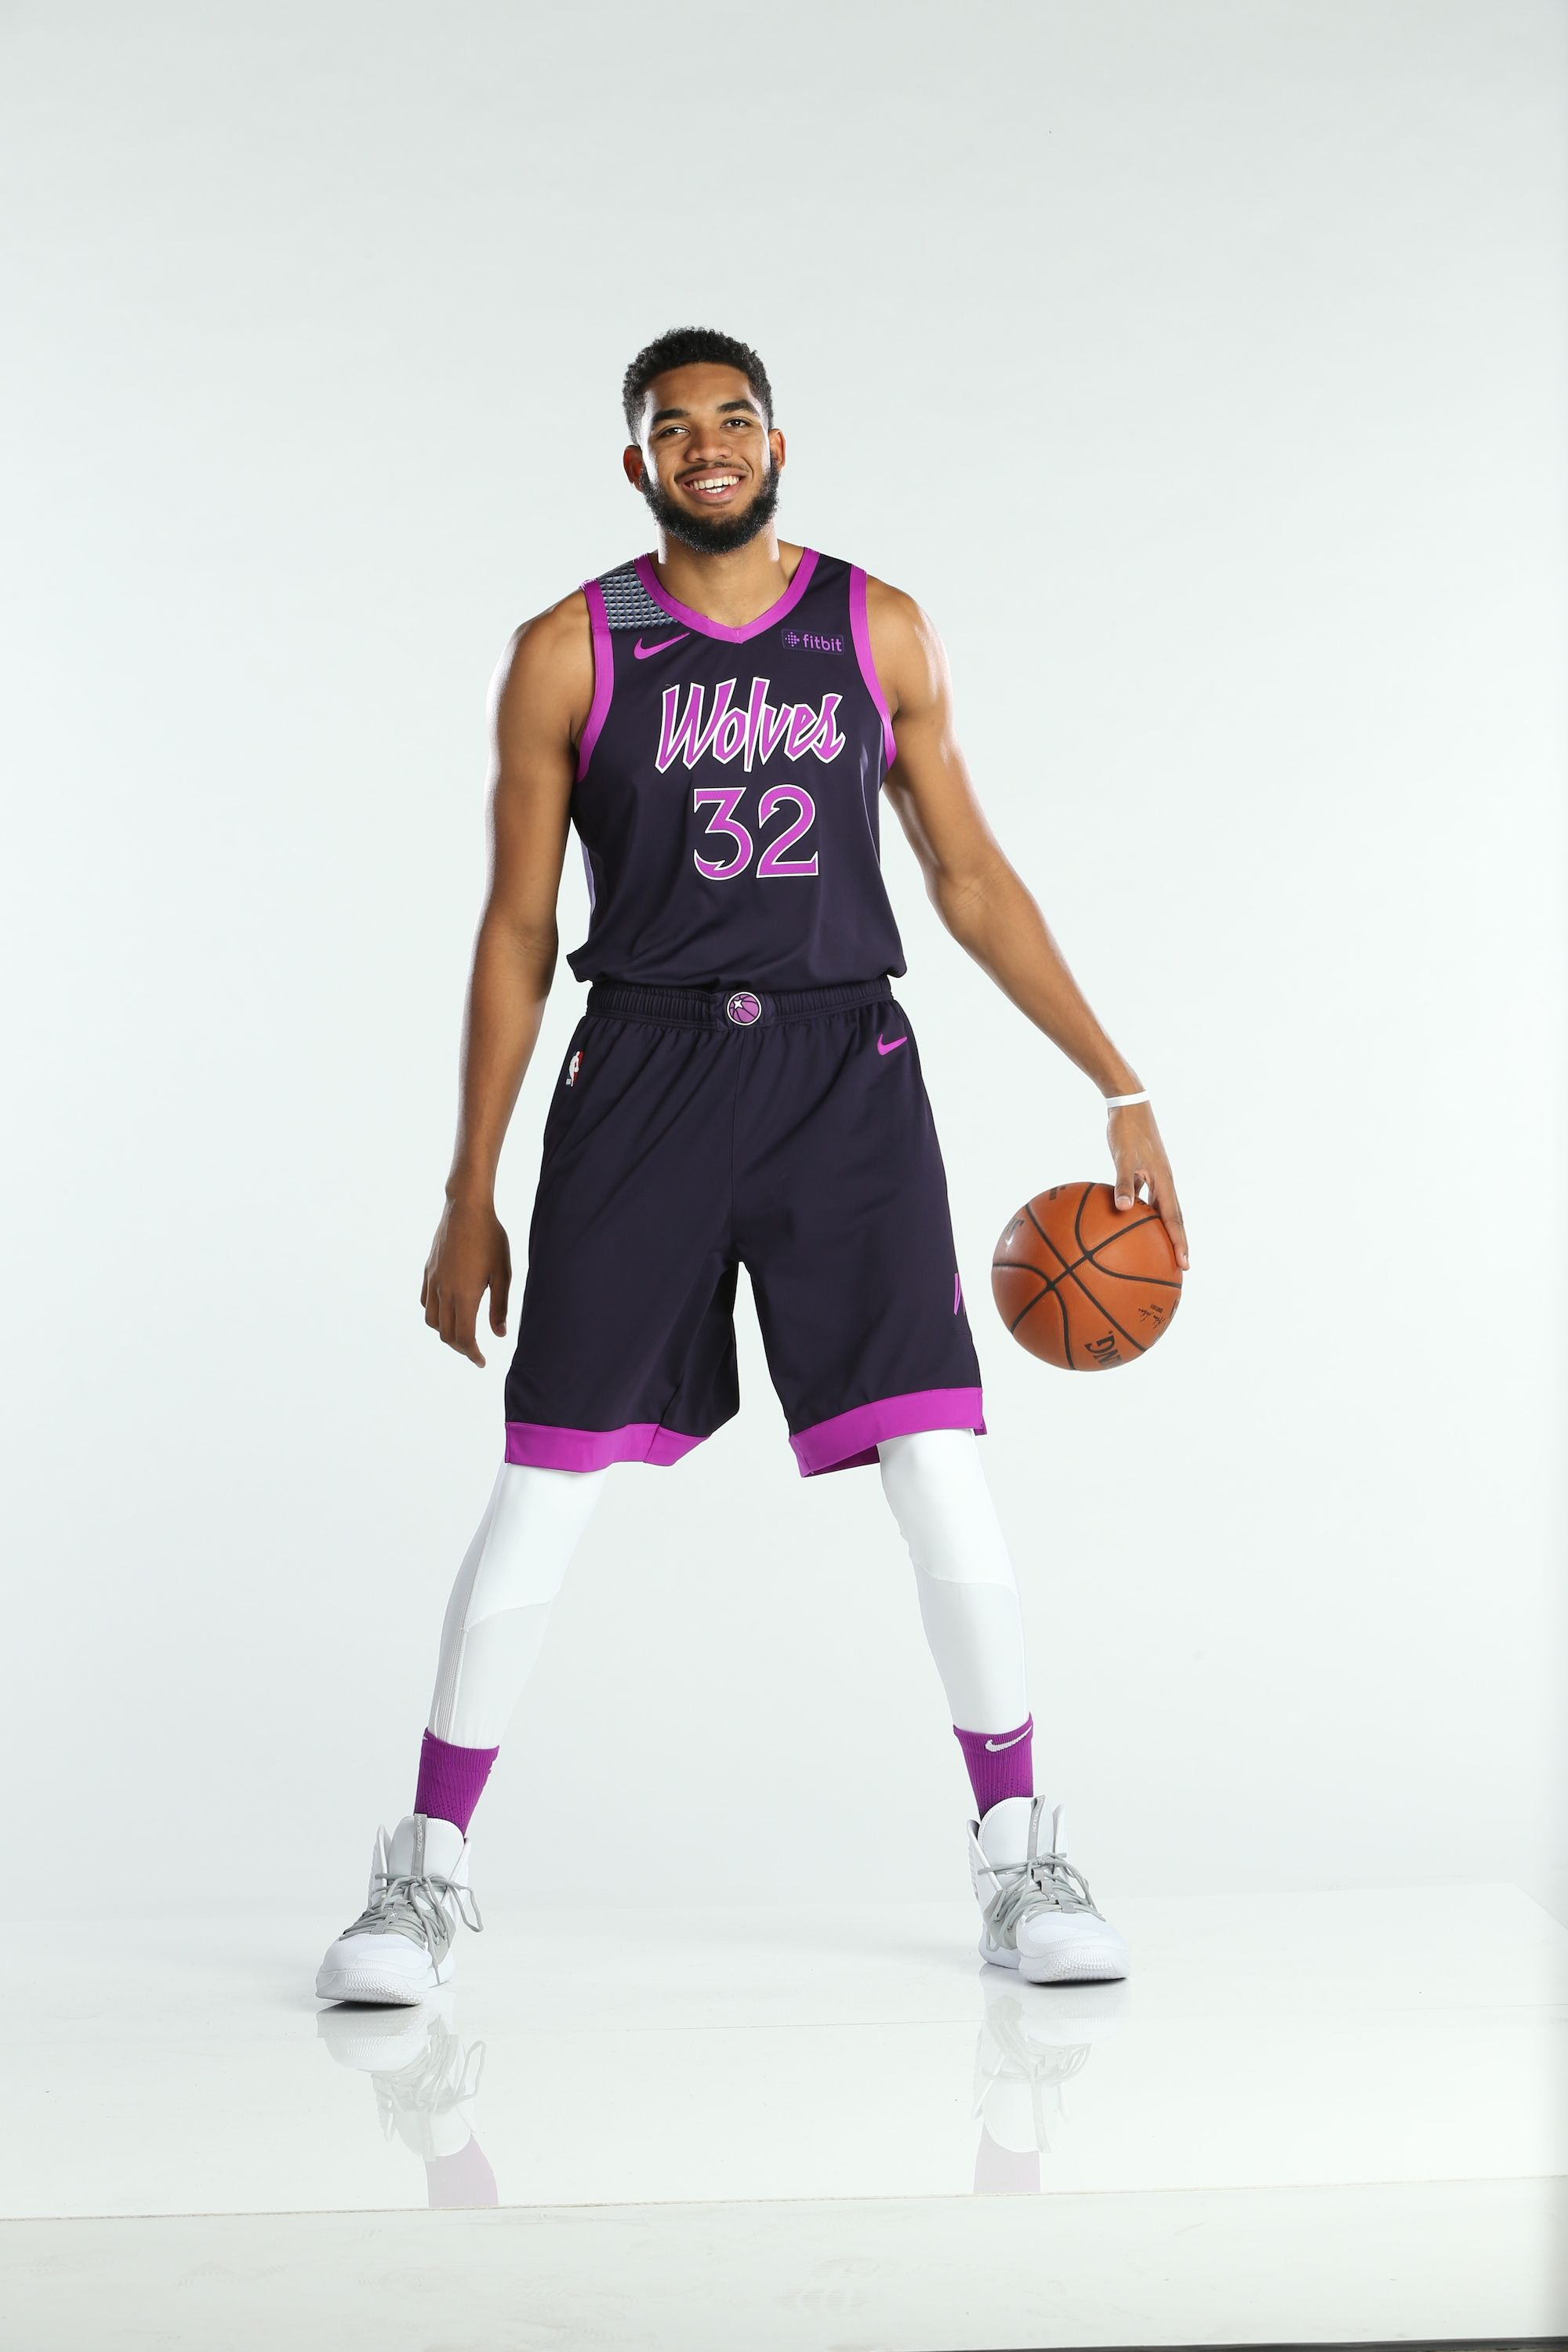 Minnesota Timberwolves Prince Uniform - Prince Purple Rain Basketball  Uniform 390c9c9fe